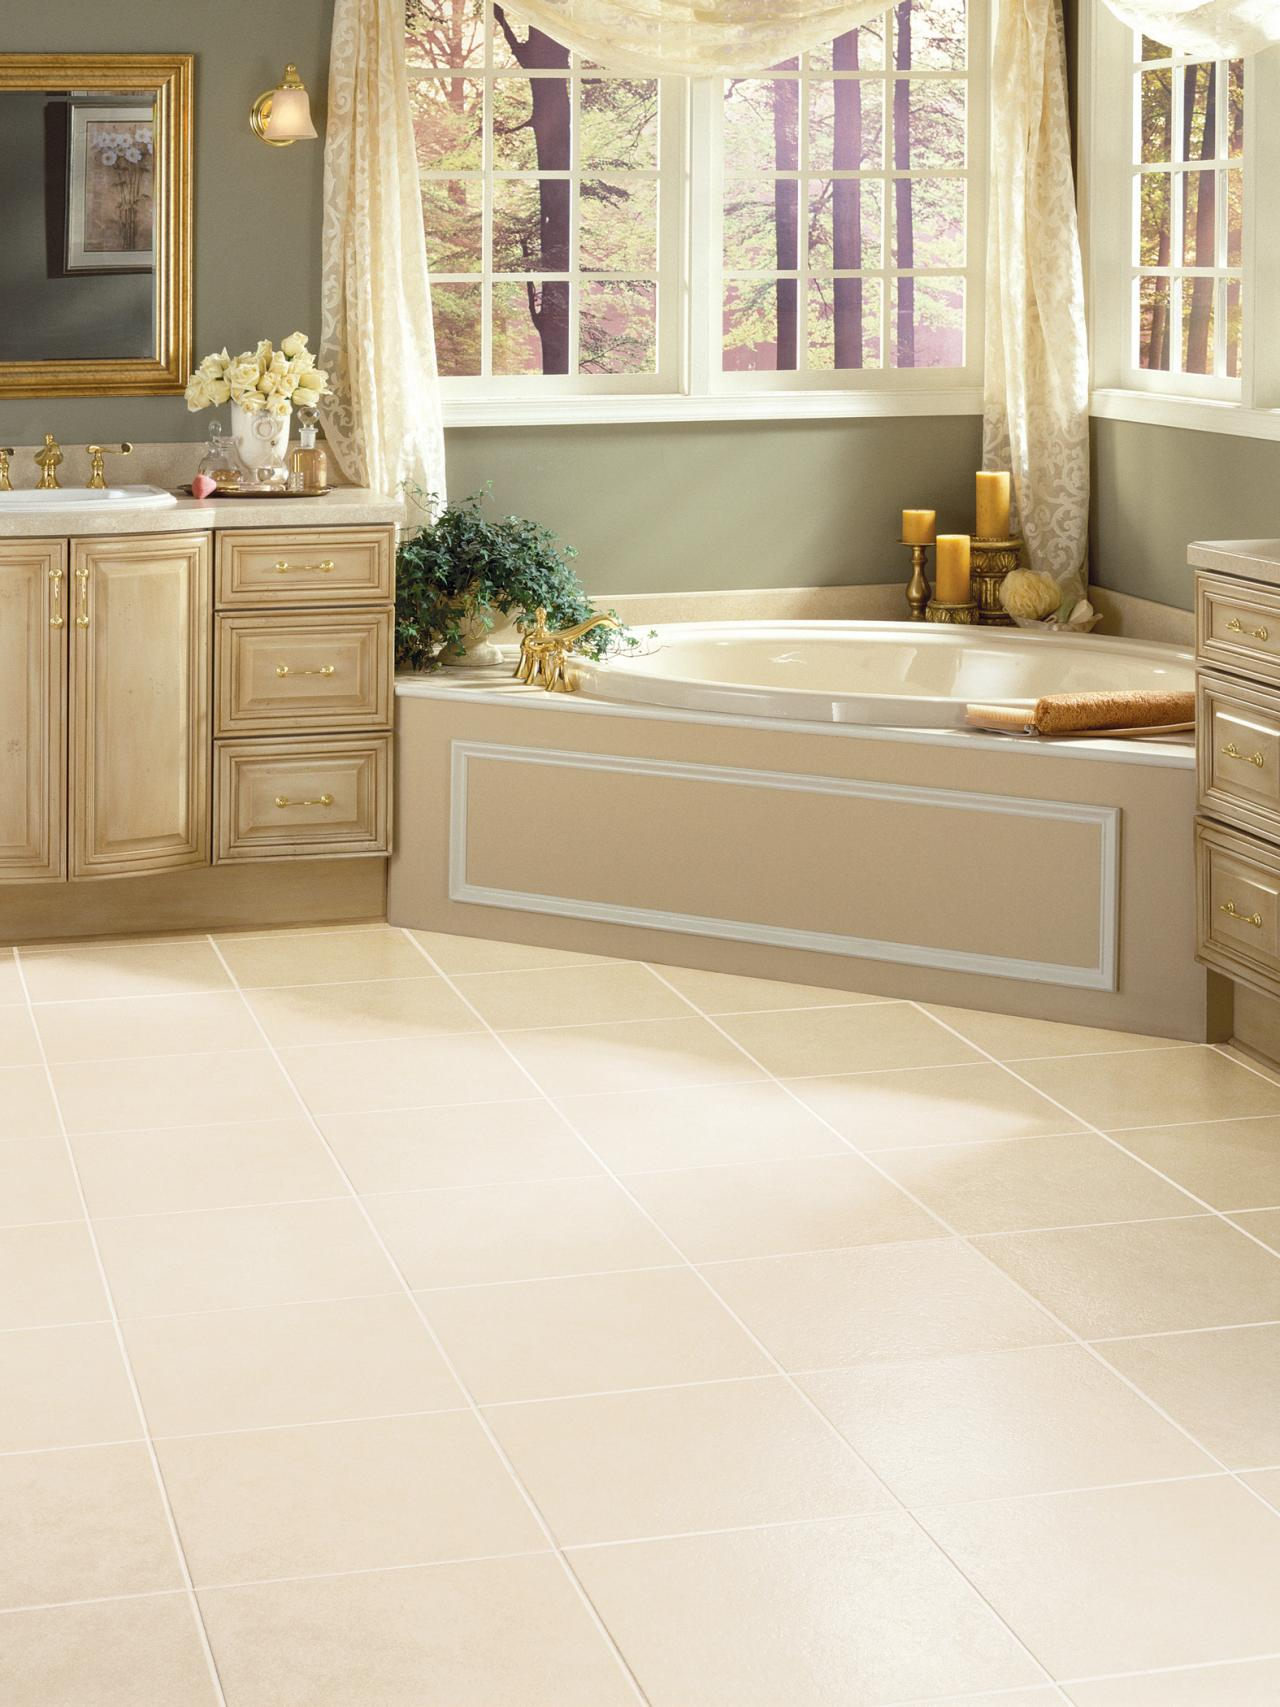 SP0249_heirloom-bath-02_s3x4.jpg.rend.hgtvcom.1280.1707